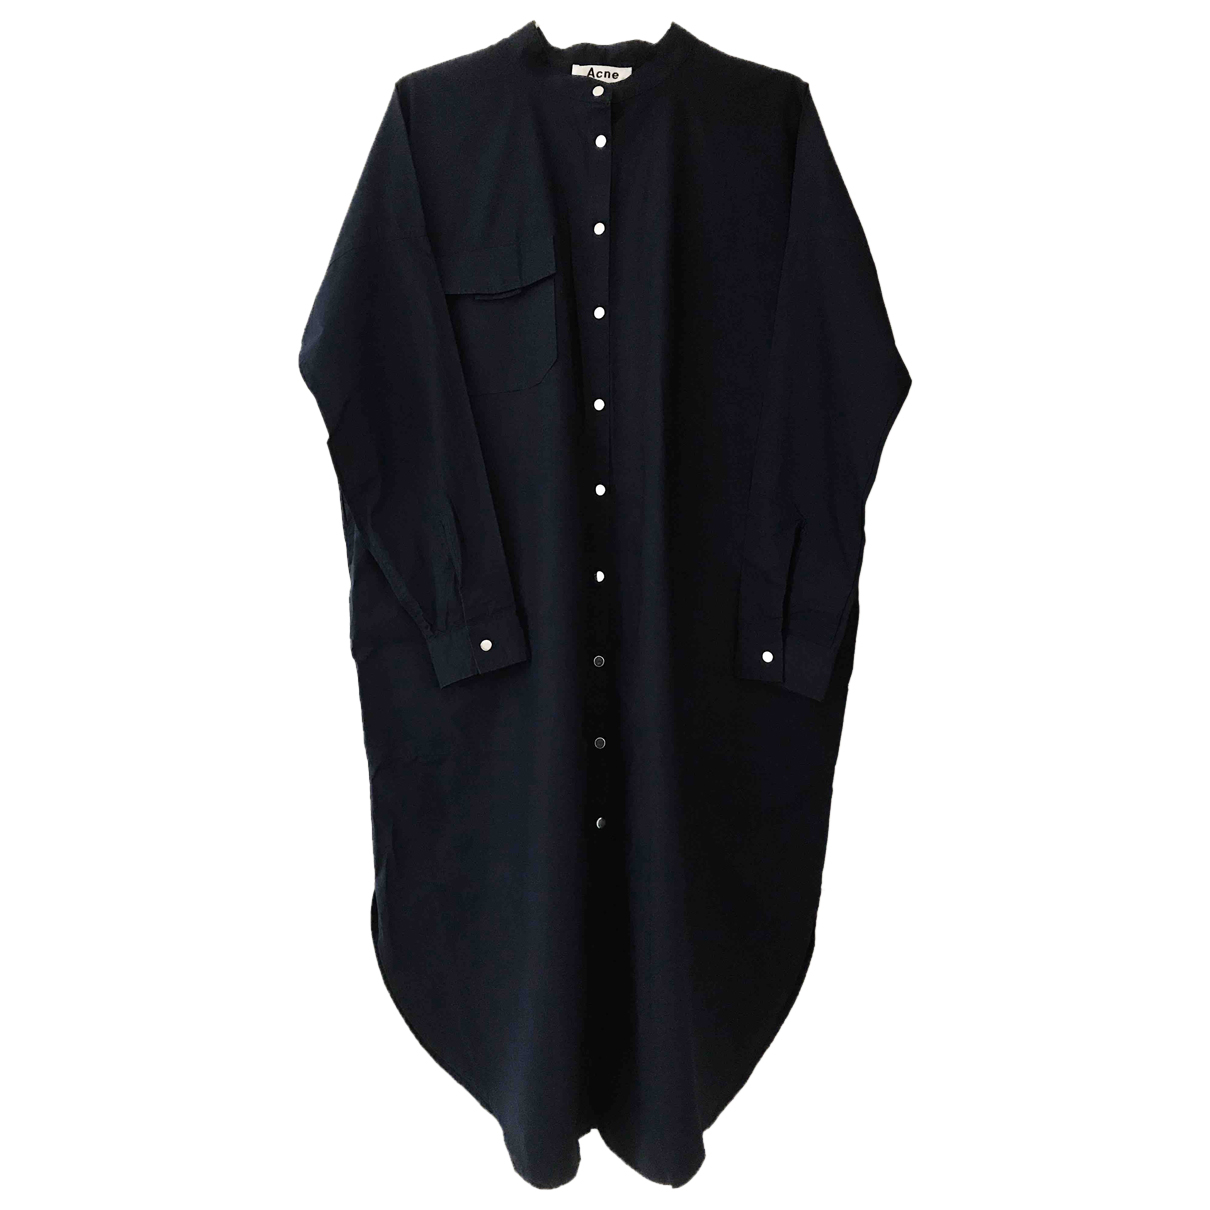 Acne Studios N Navy Cotton dress for Women 36 FR